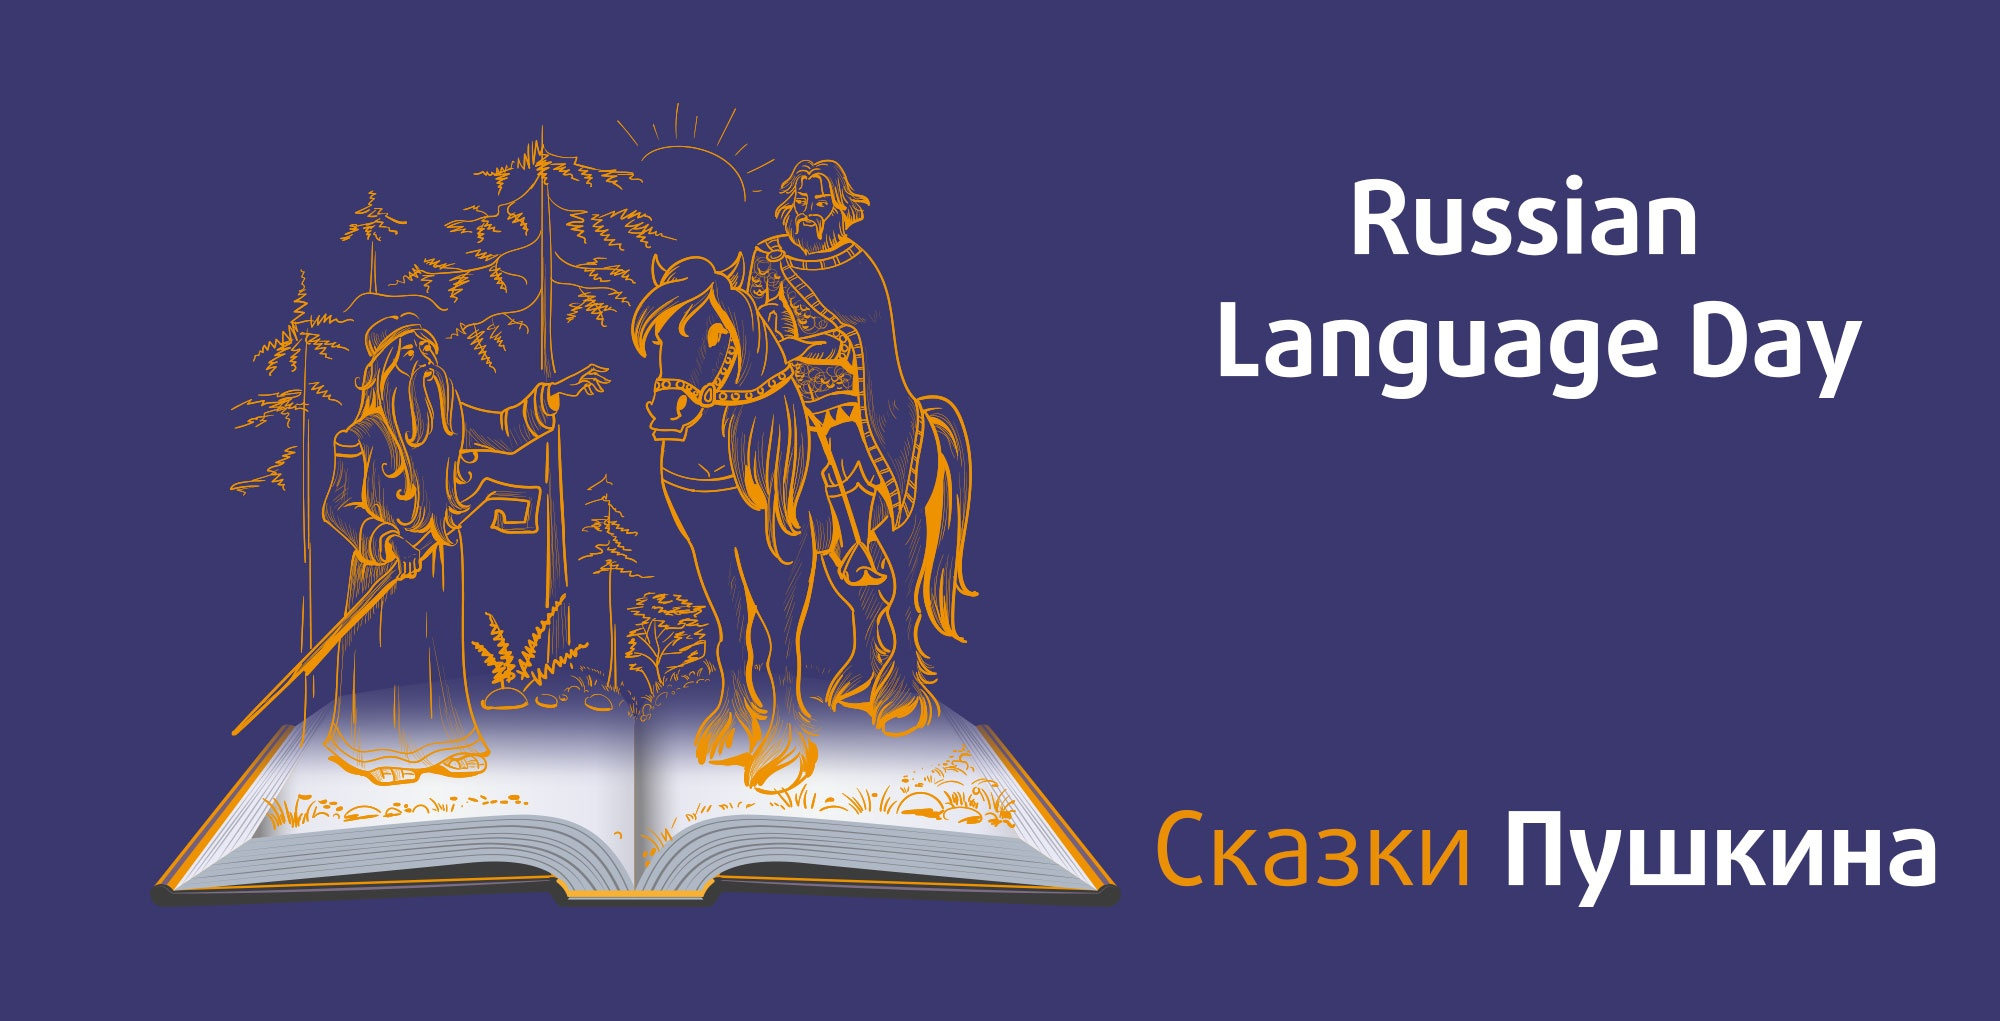 Russian Language Day - Pushkin's birthday